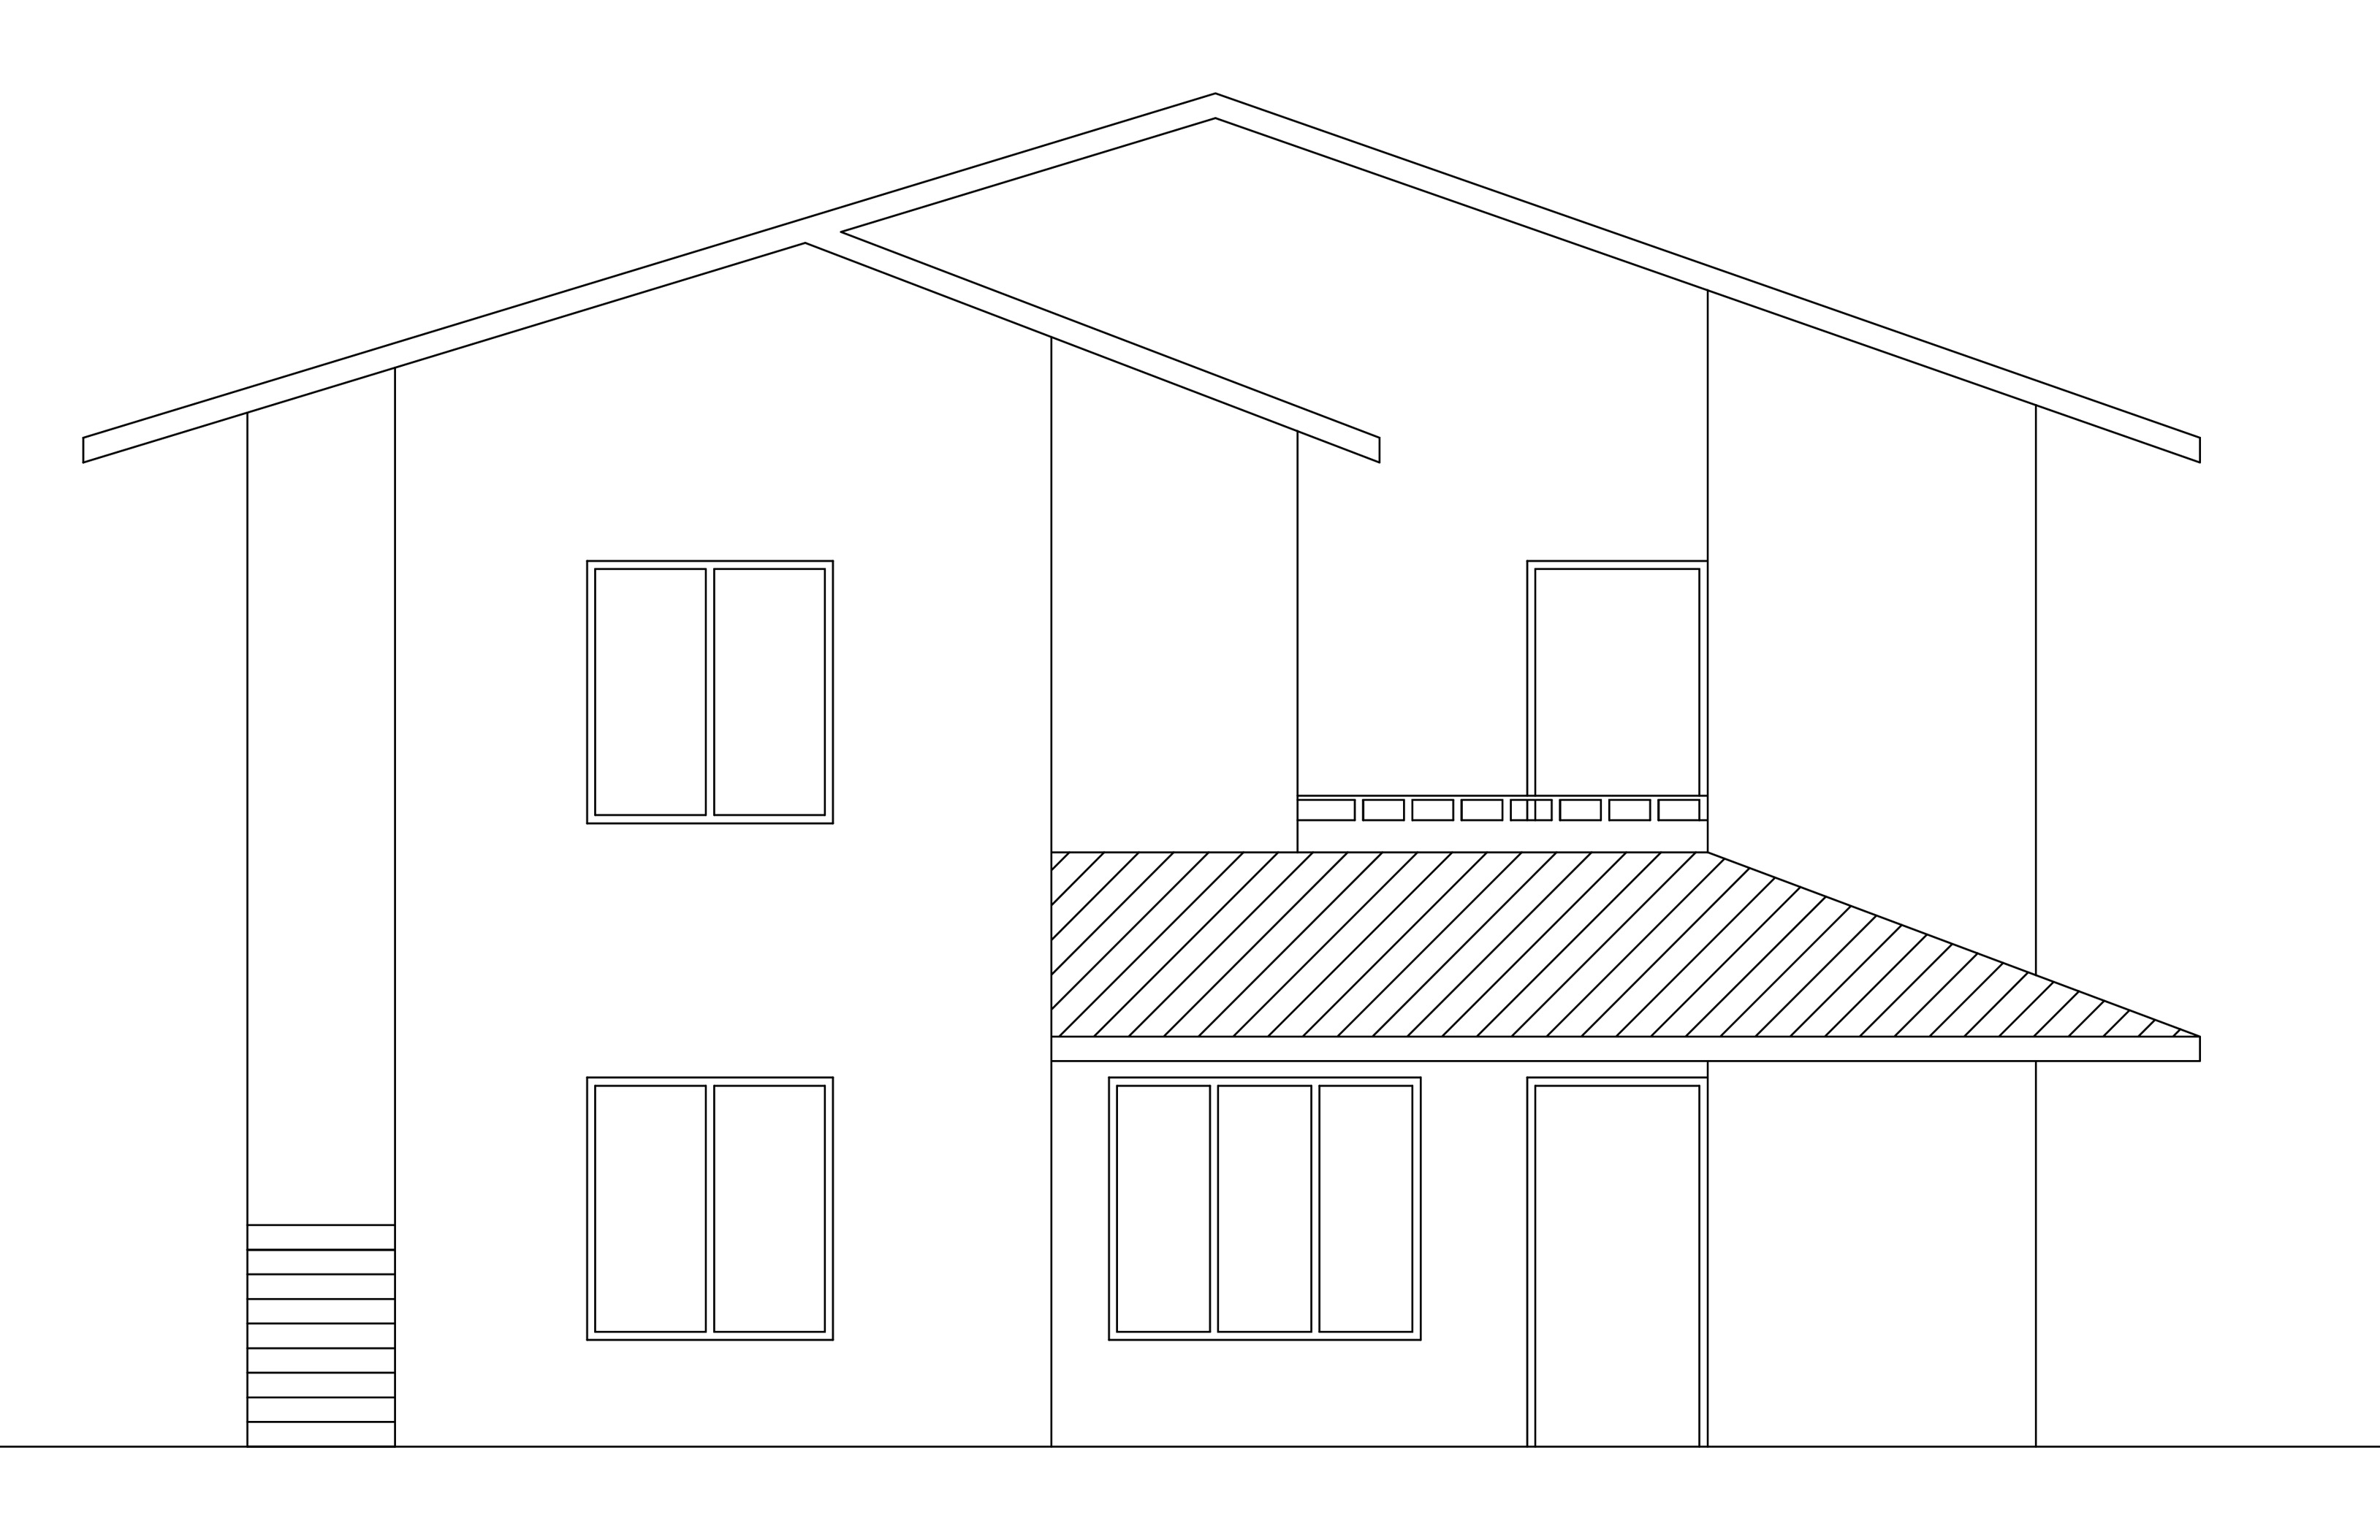 Double Storey Bungalow Elevation : Double story house plan from dwgnet